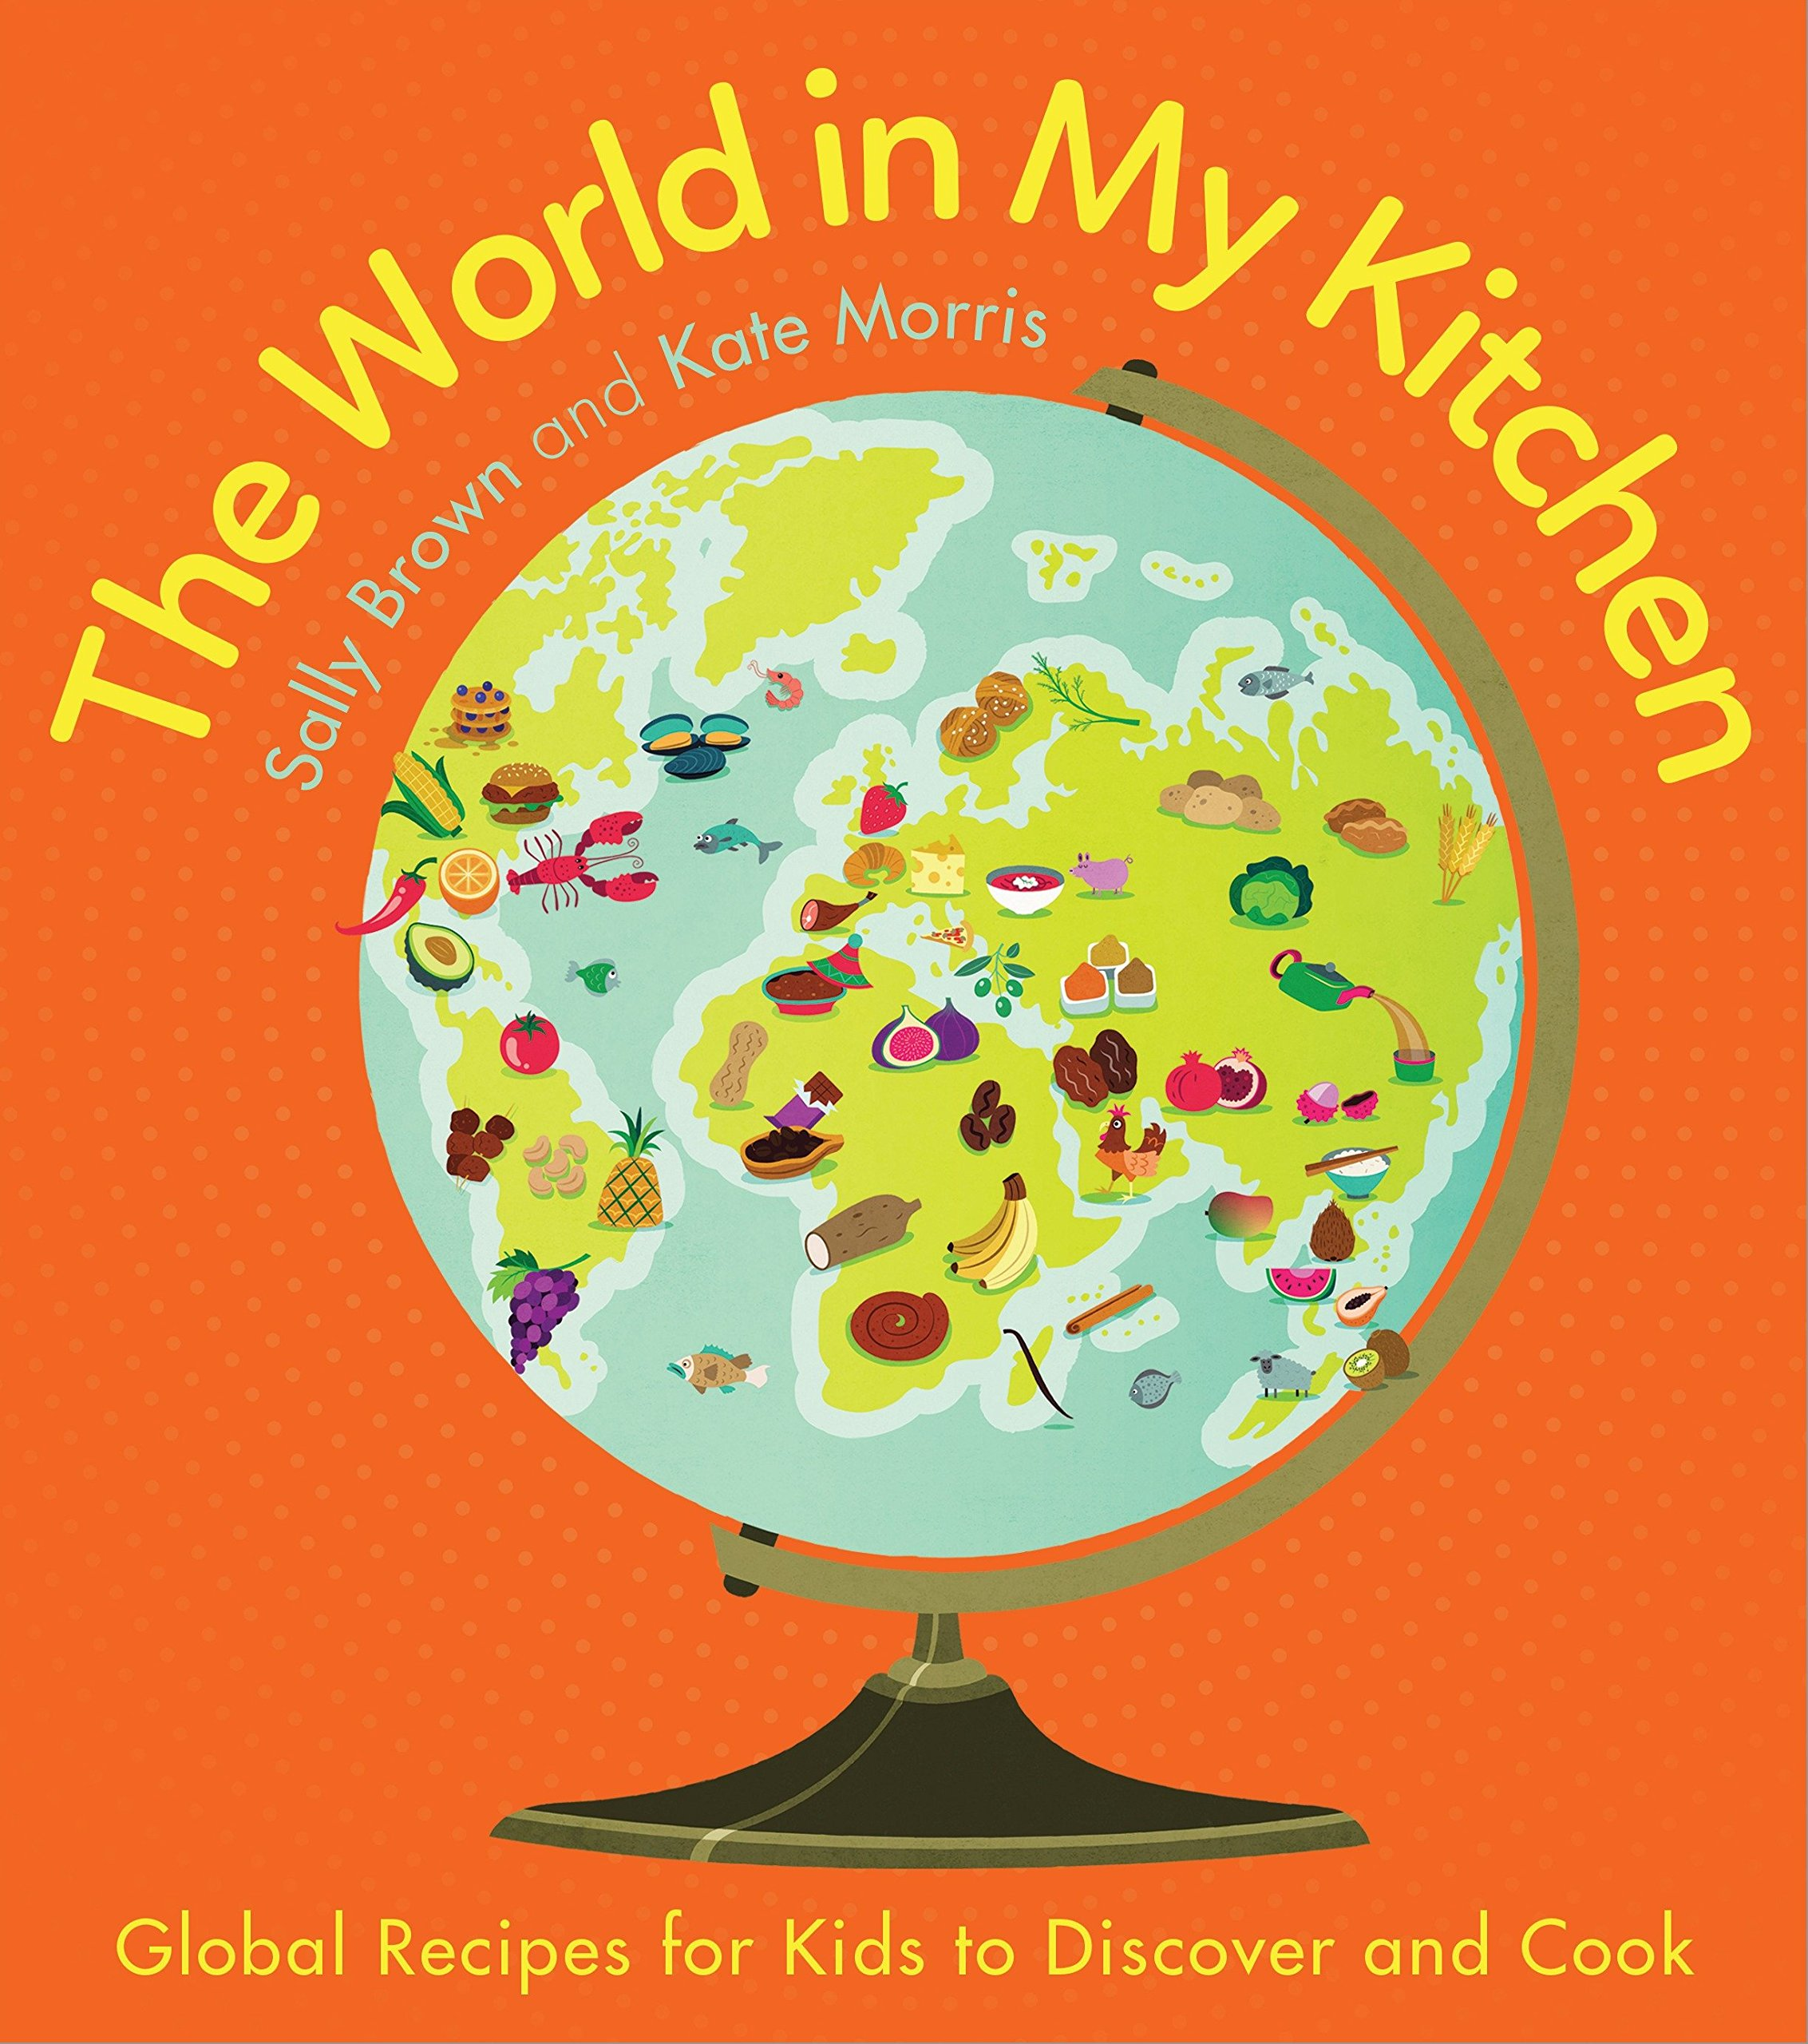 The World In My Kitchen: Global recipes for kids to discover and cook pdf